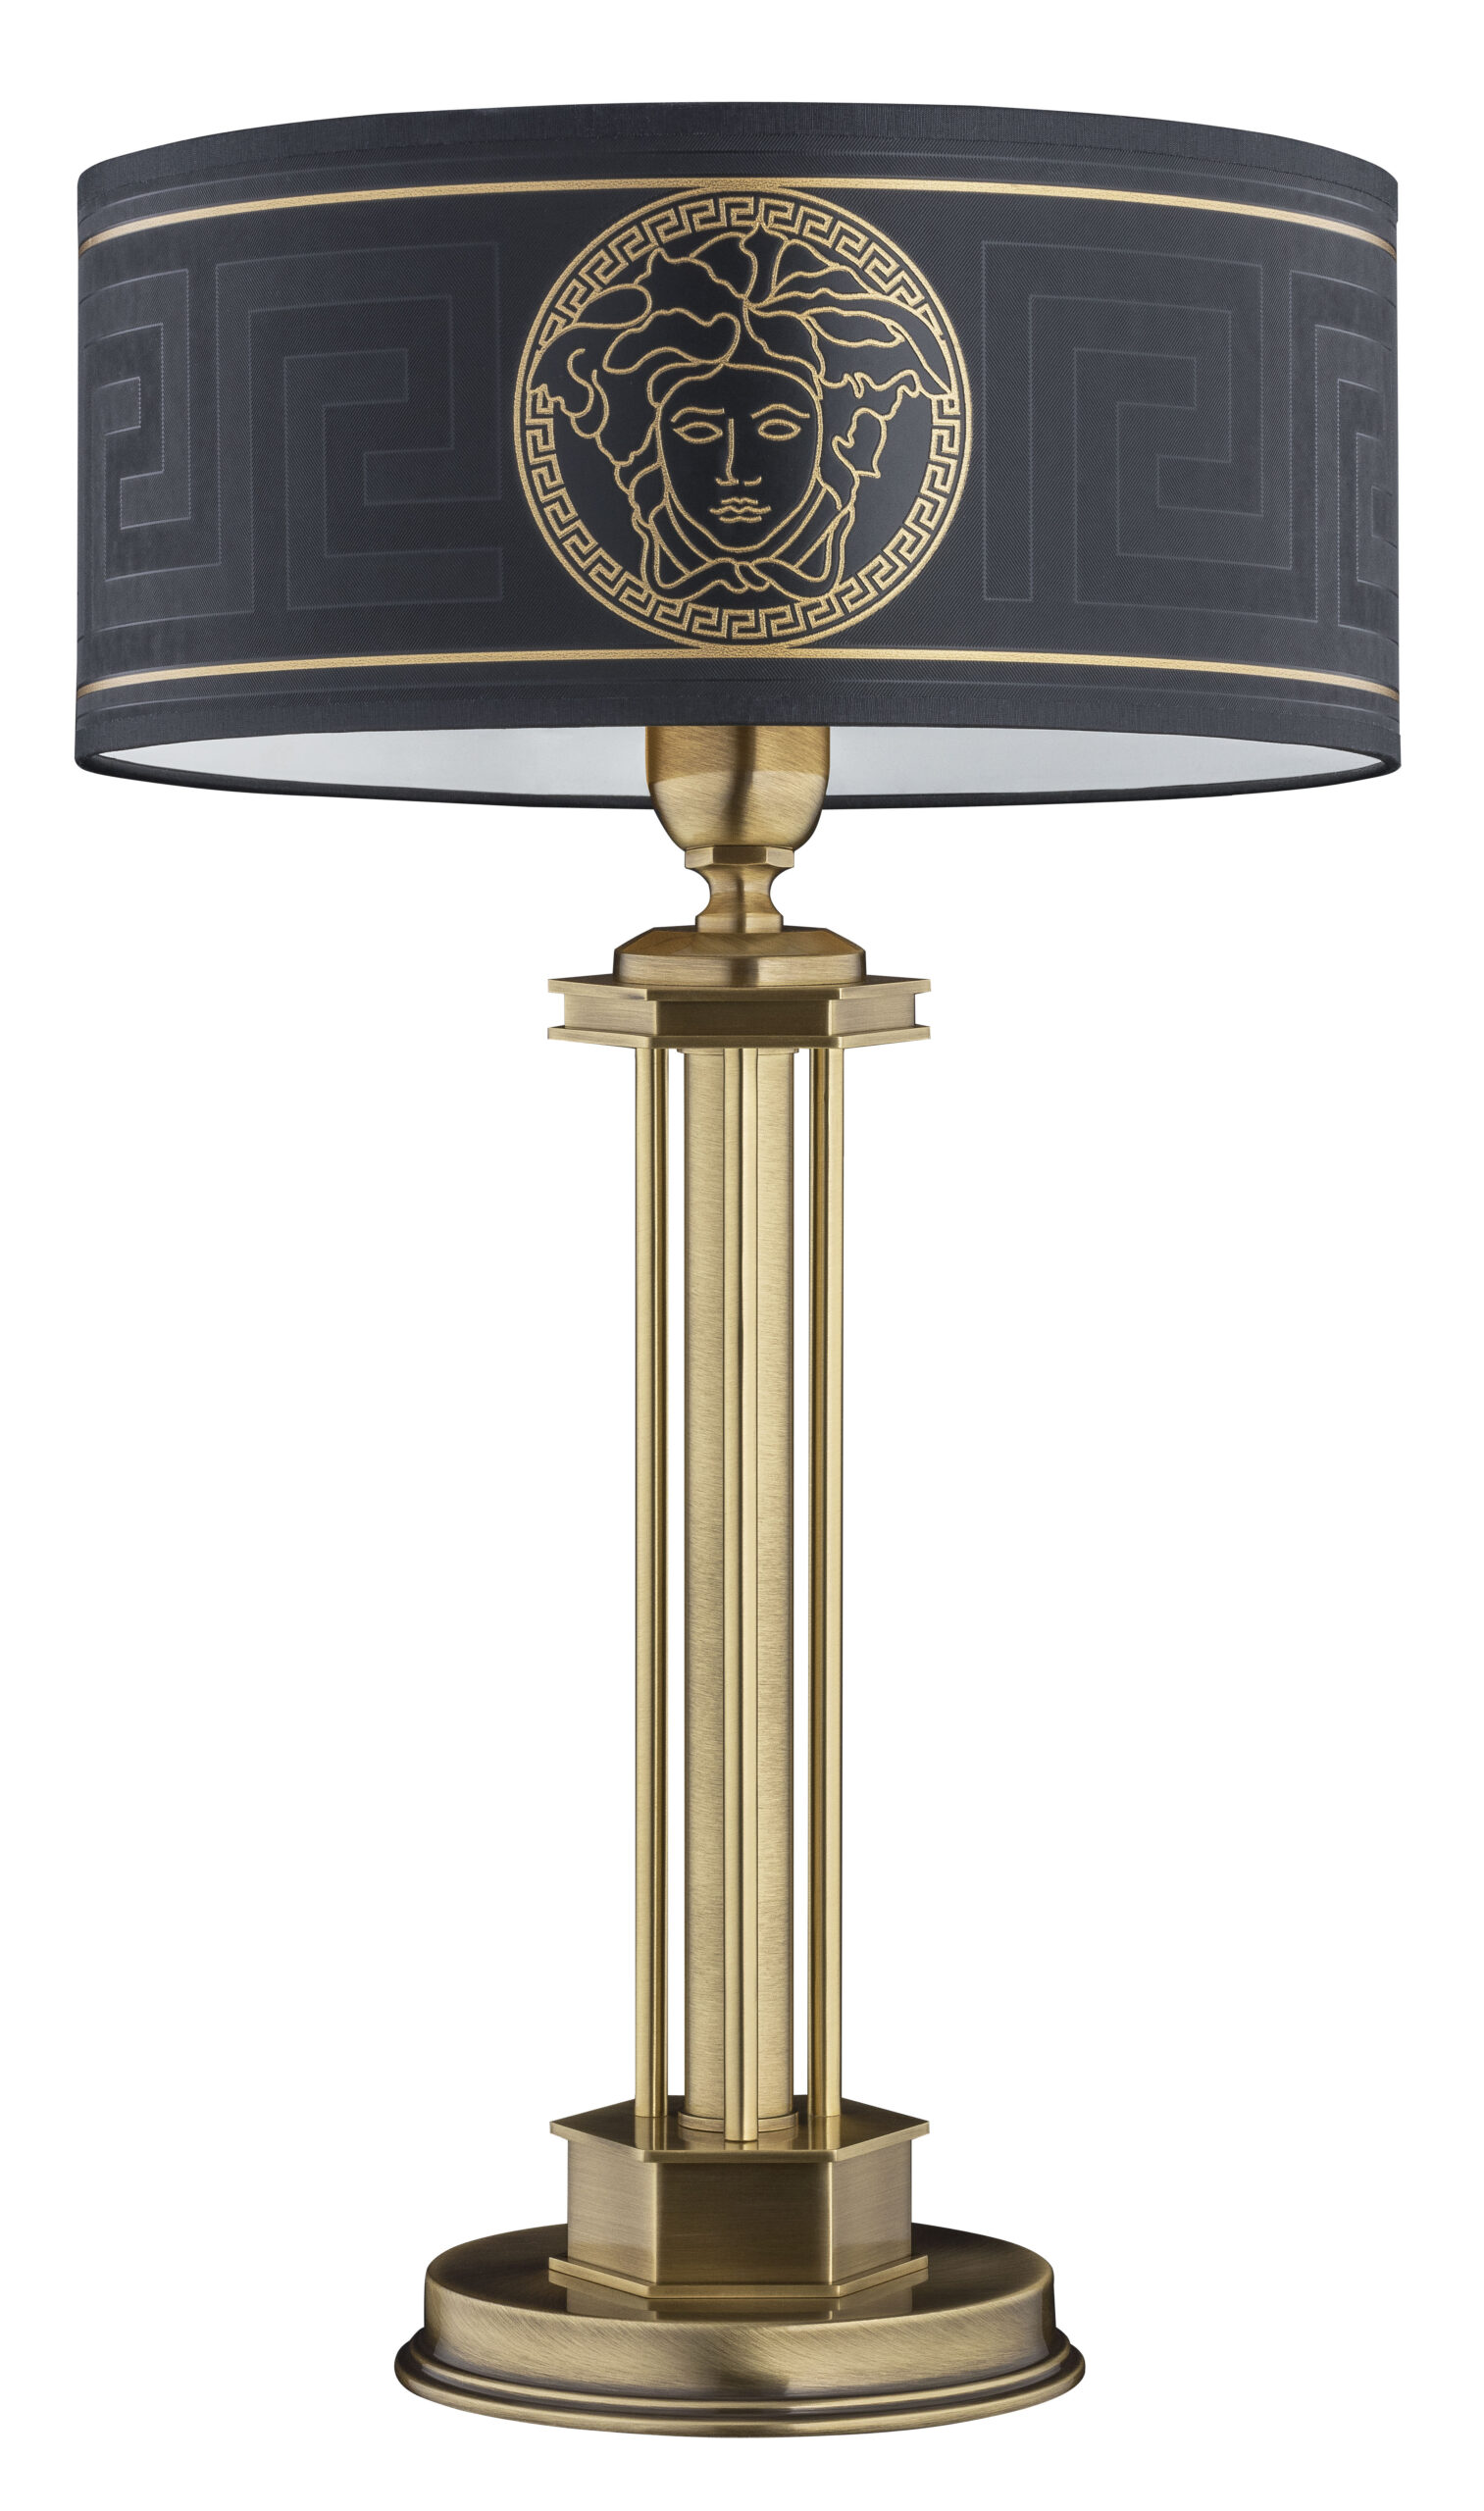 Decor Table Lamps In Old Gold Versace Shade Luxury Chandelier